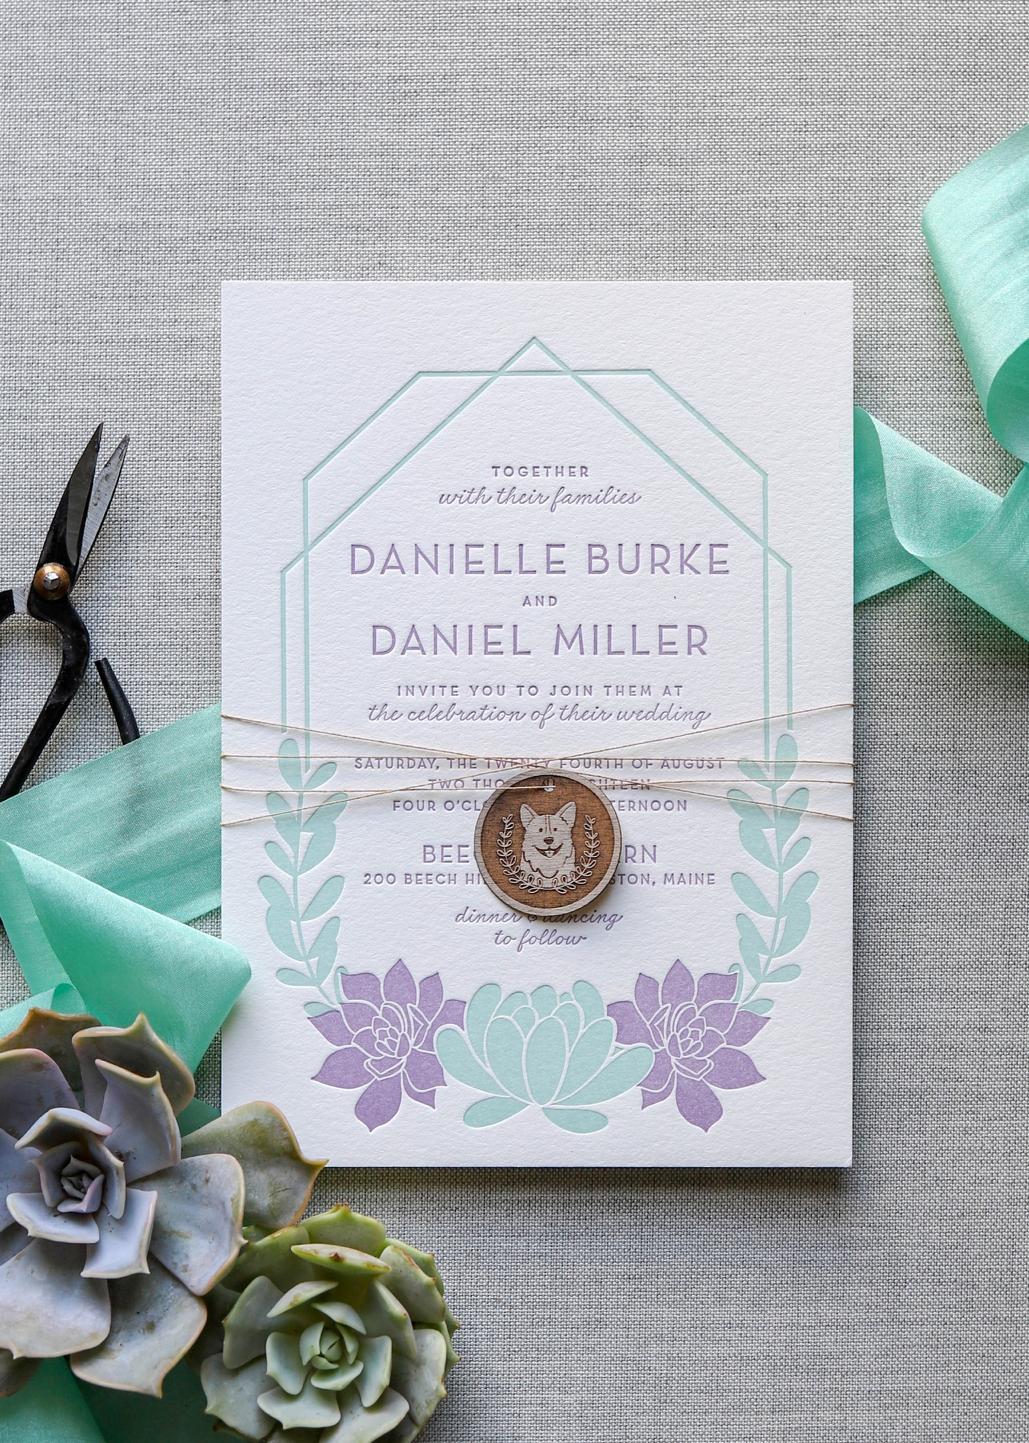 succulent desert wedding invitations with a modern twist. letterpress printed and custom illustrated